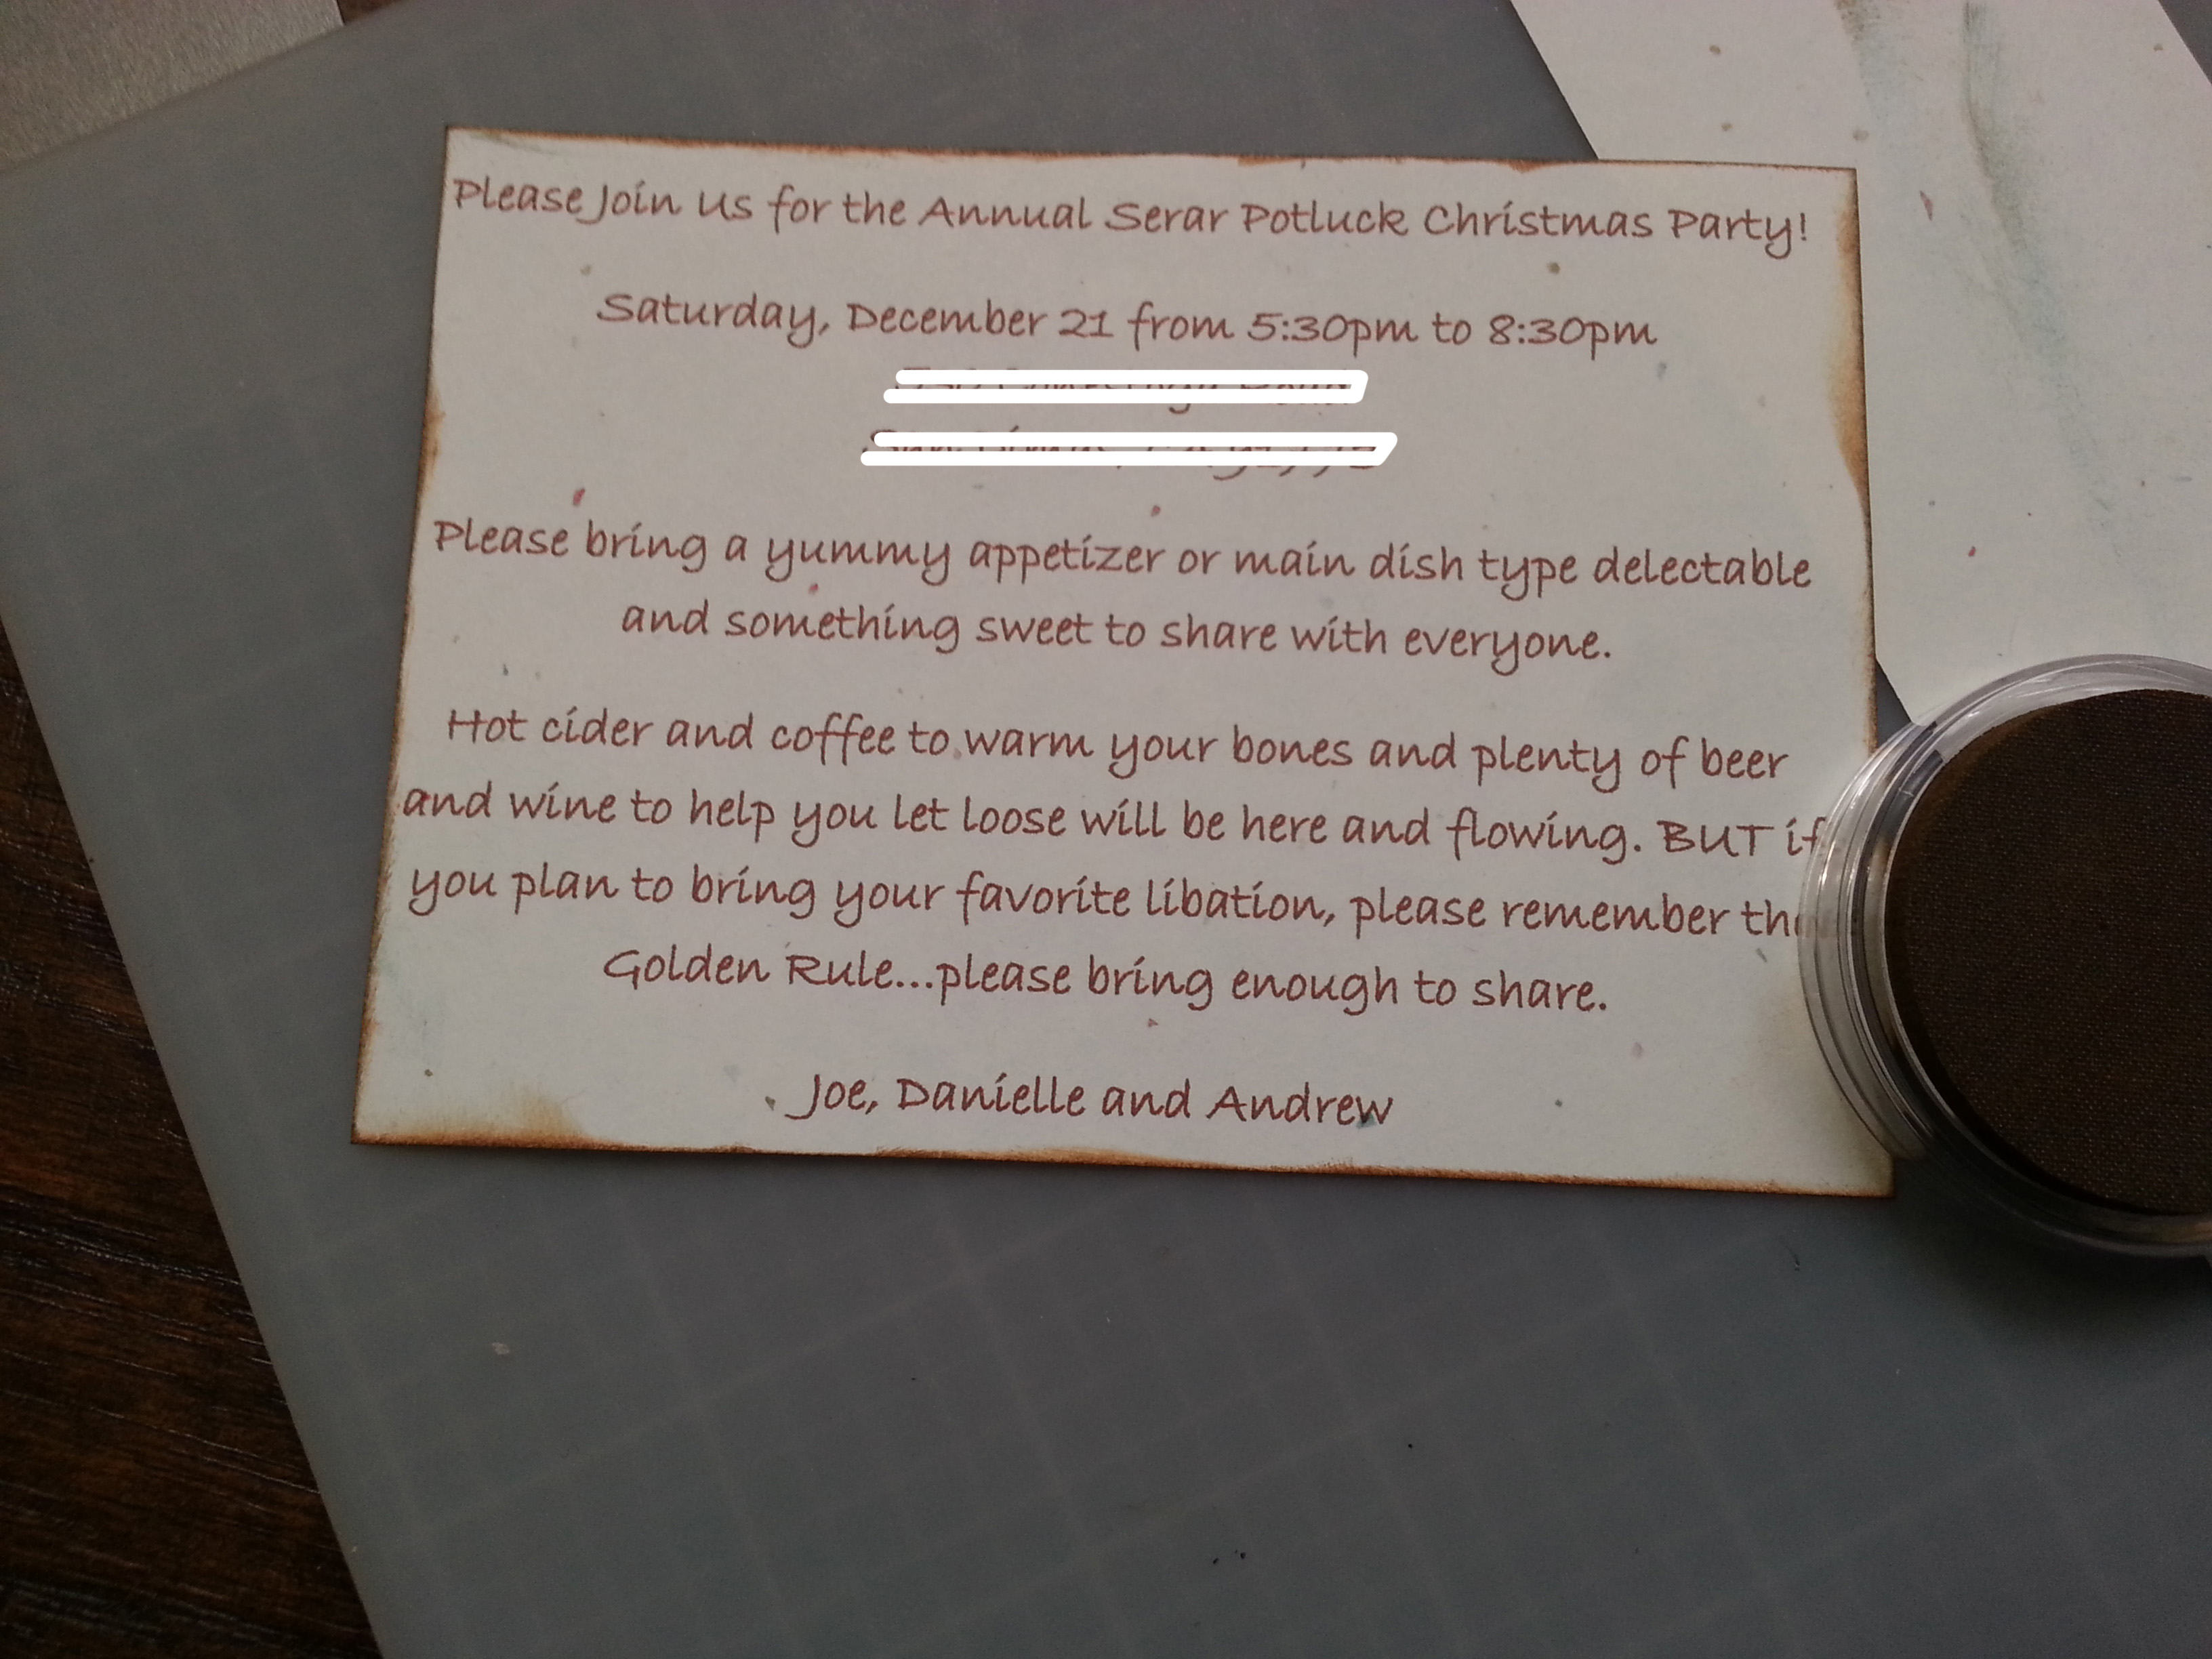 Embellishing Inserts for Handmade Invitations www.wifemomhouseohmy.com